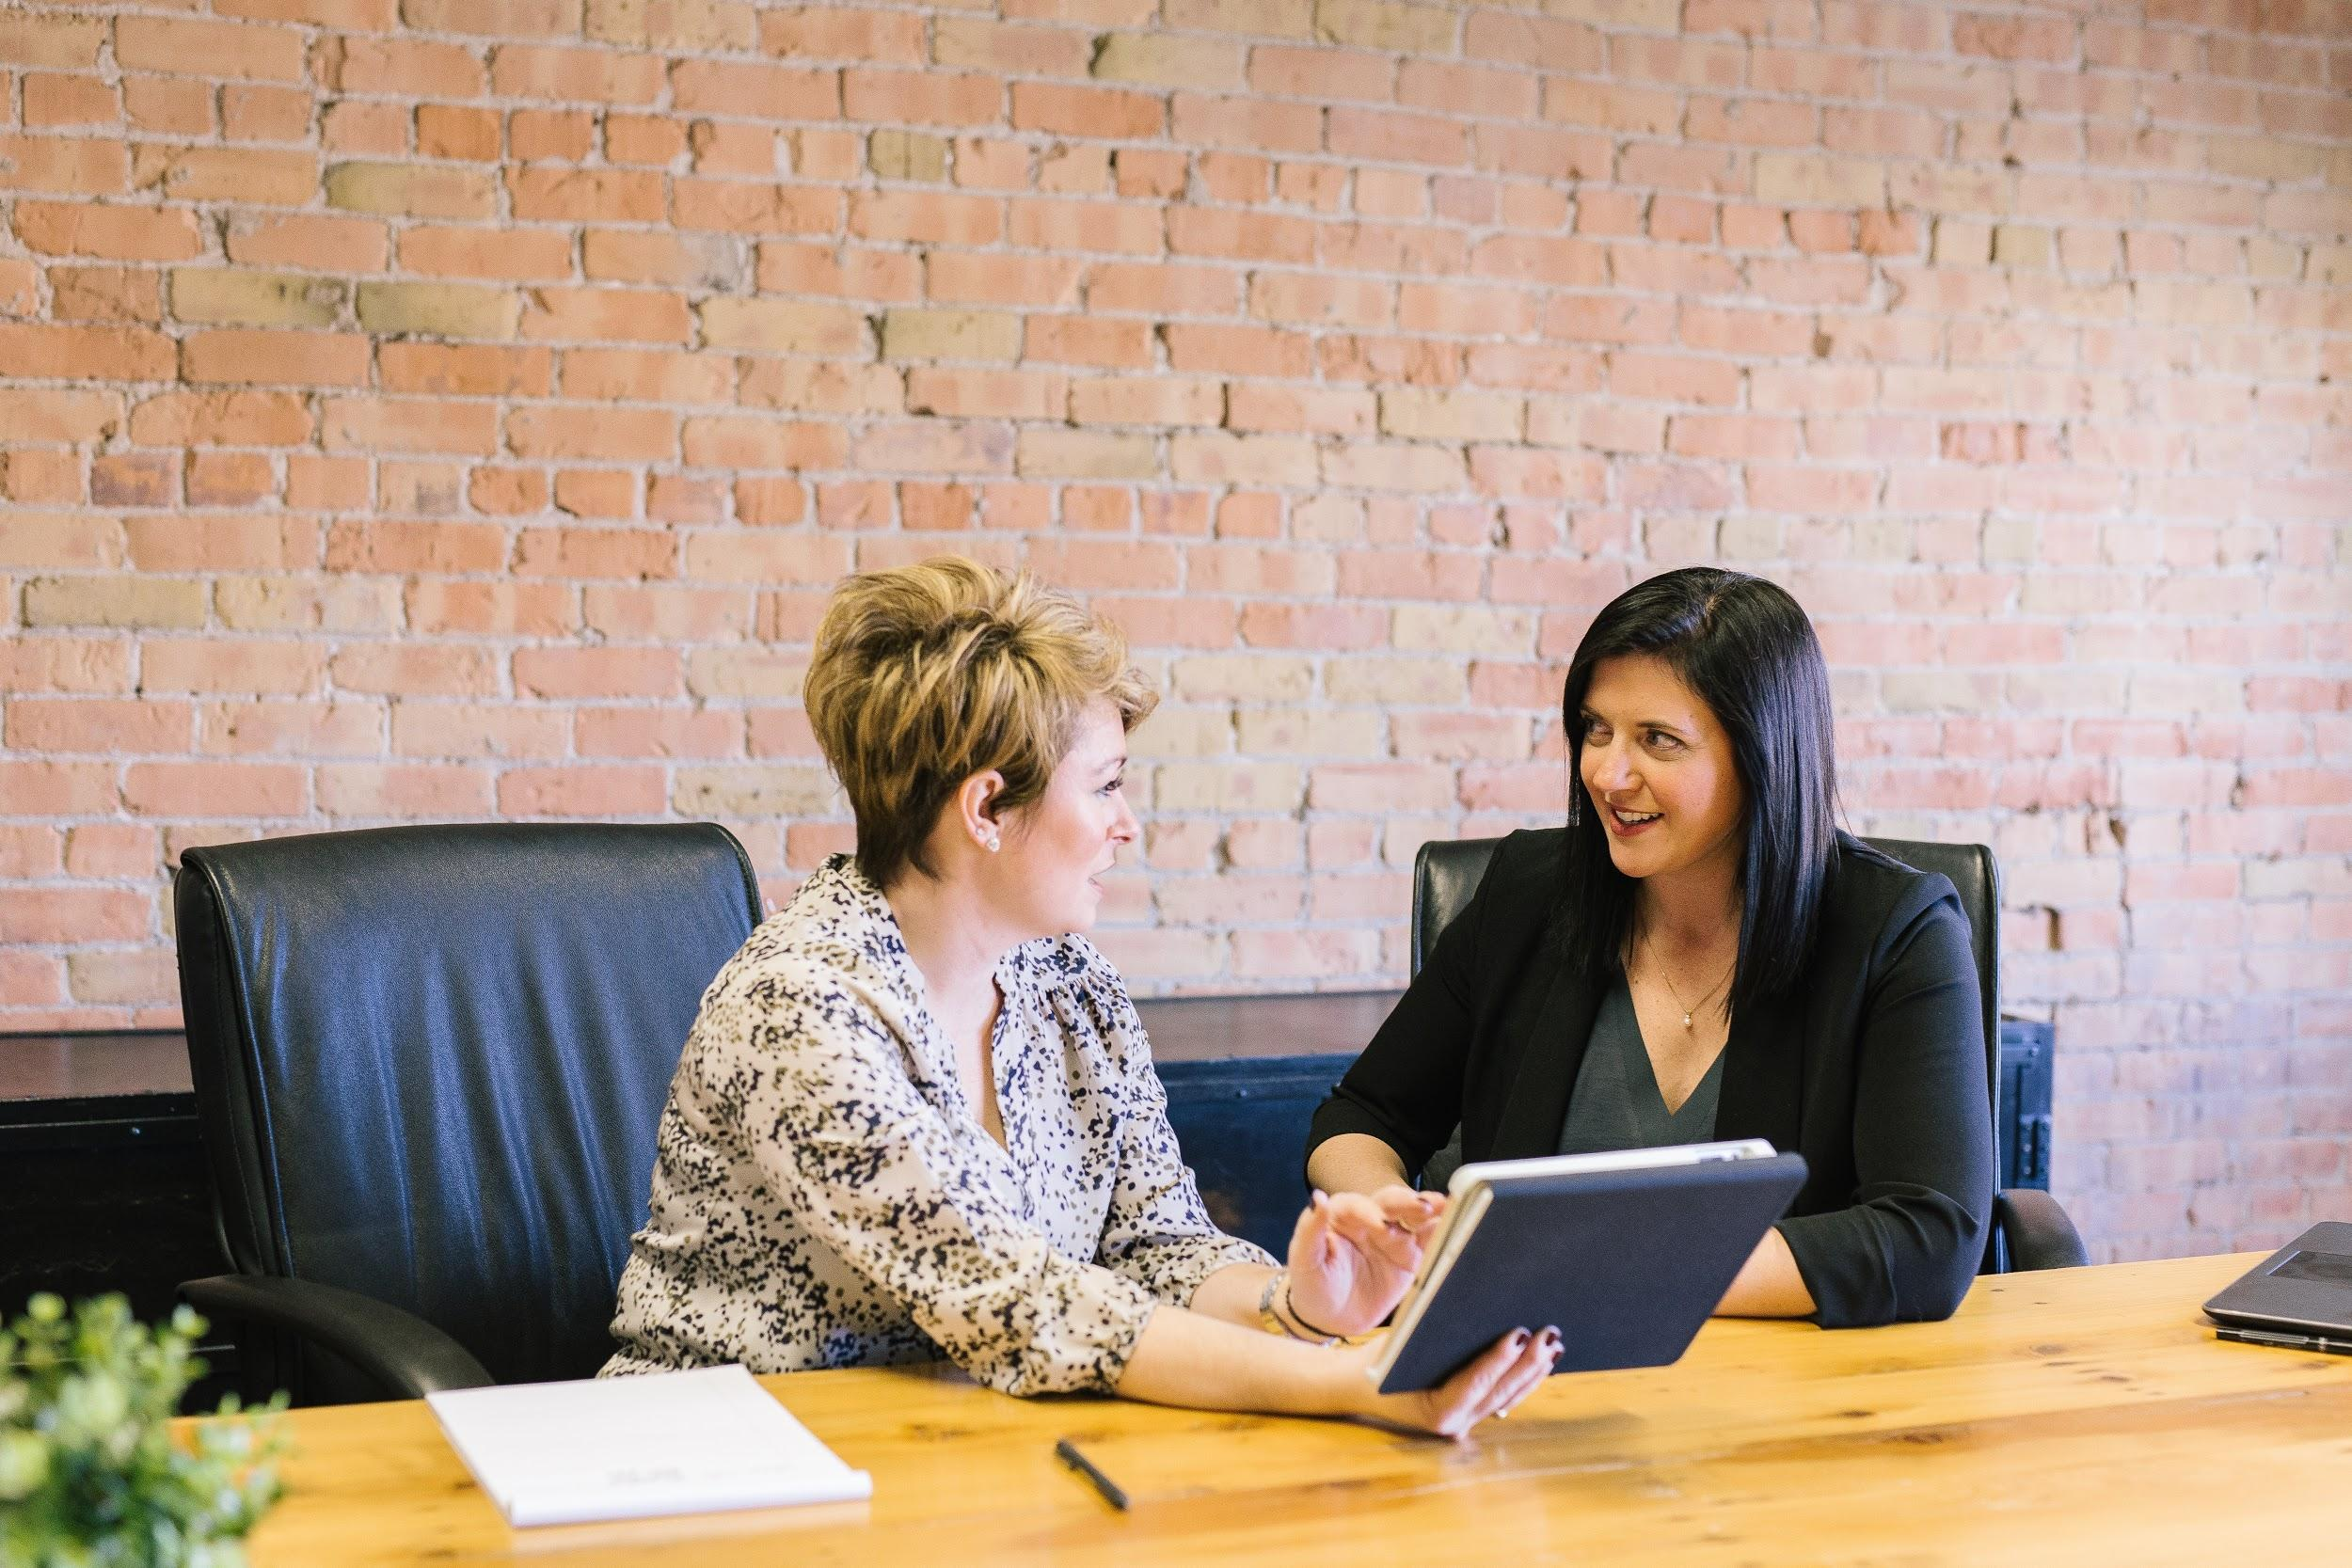 Two women sit at a conference table. One woman is showing some printed materials to the other woman and they are talking together.